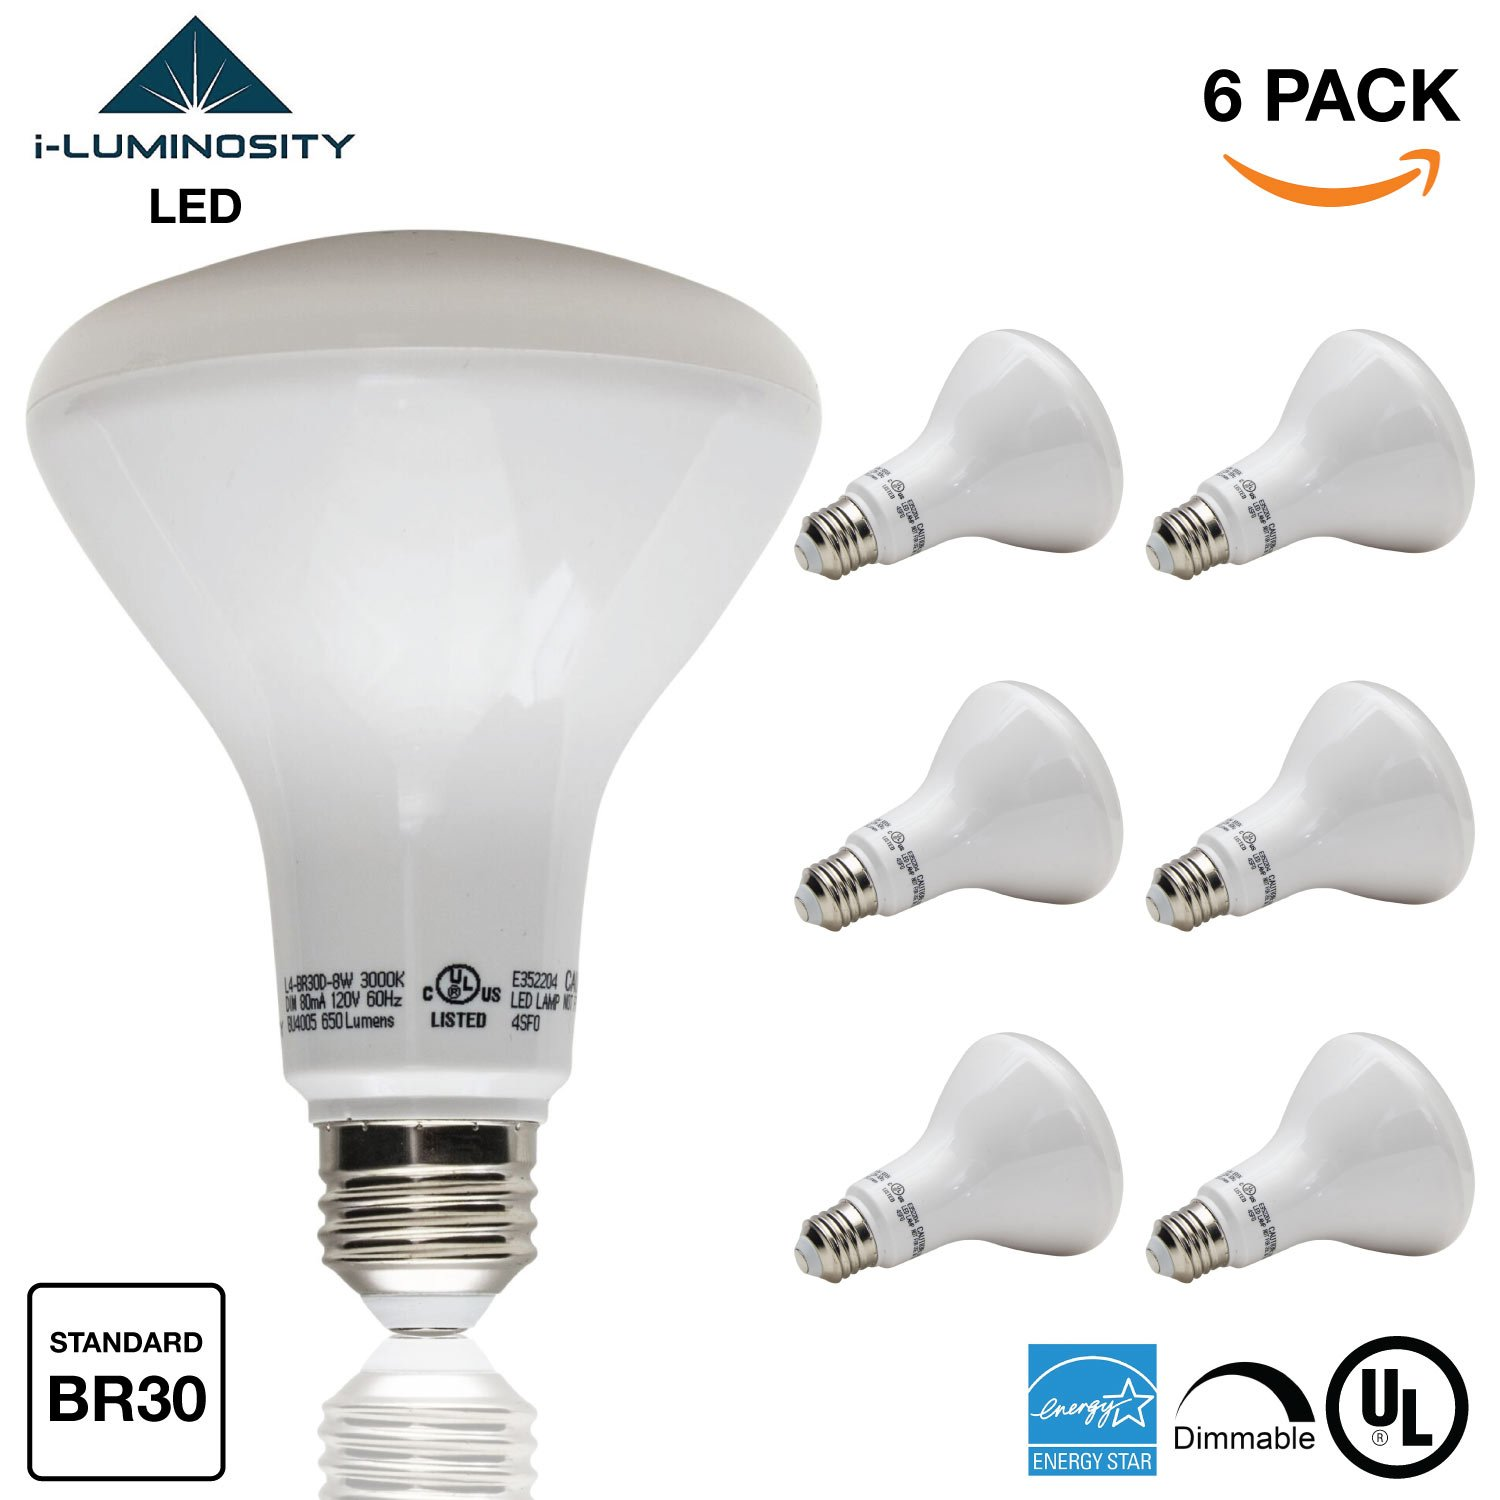 LED Light Bulbs BR30 Standard Medium - 6 Pack - 65W Equivalent - Standard E26 base - Dimmable & Instant On - Standard Bulb Great for Lower Ceiling